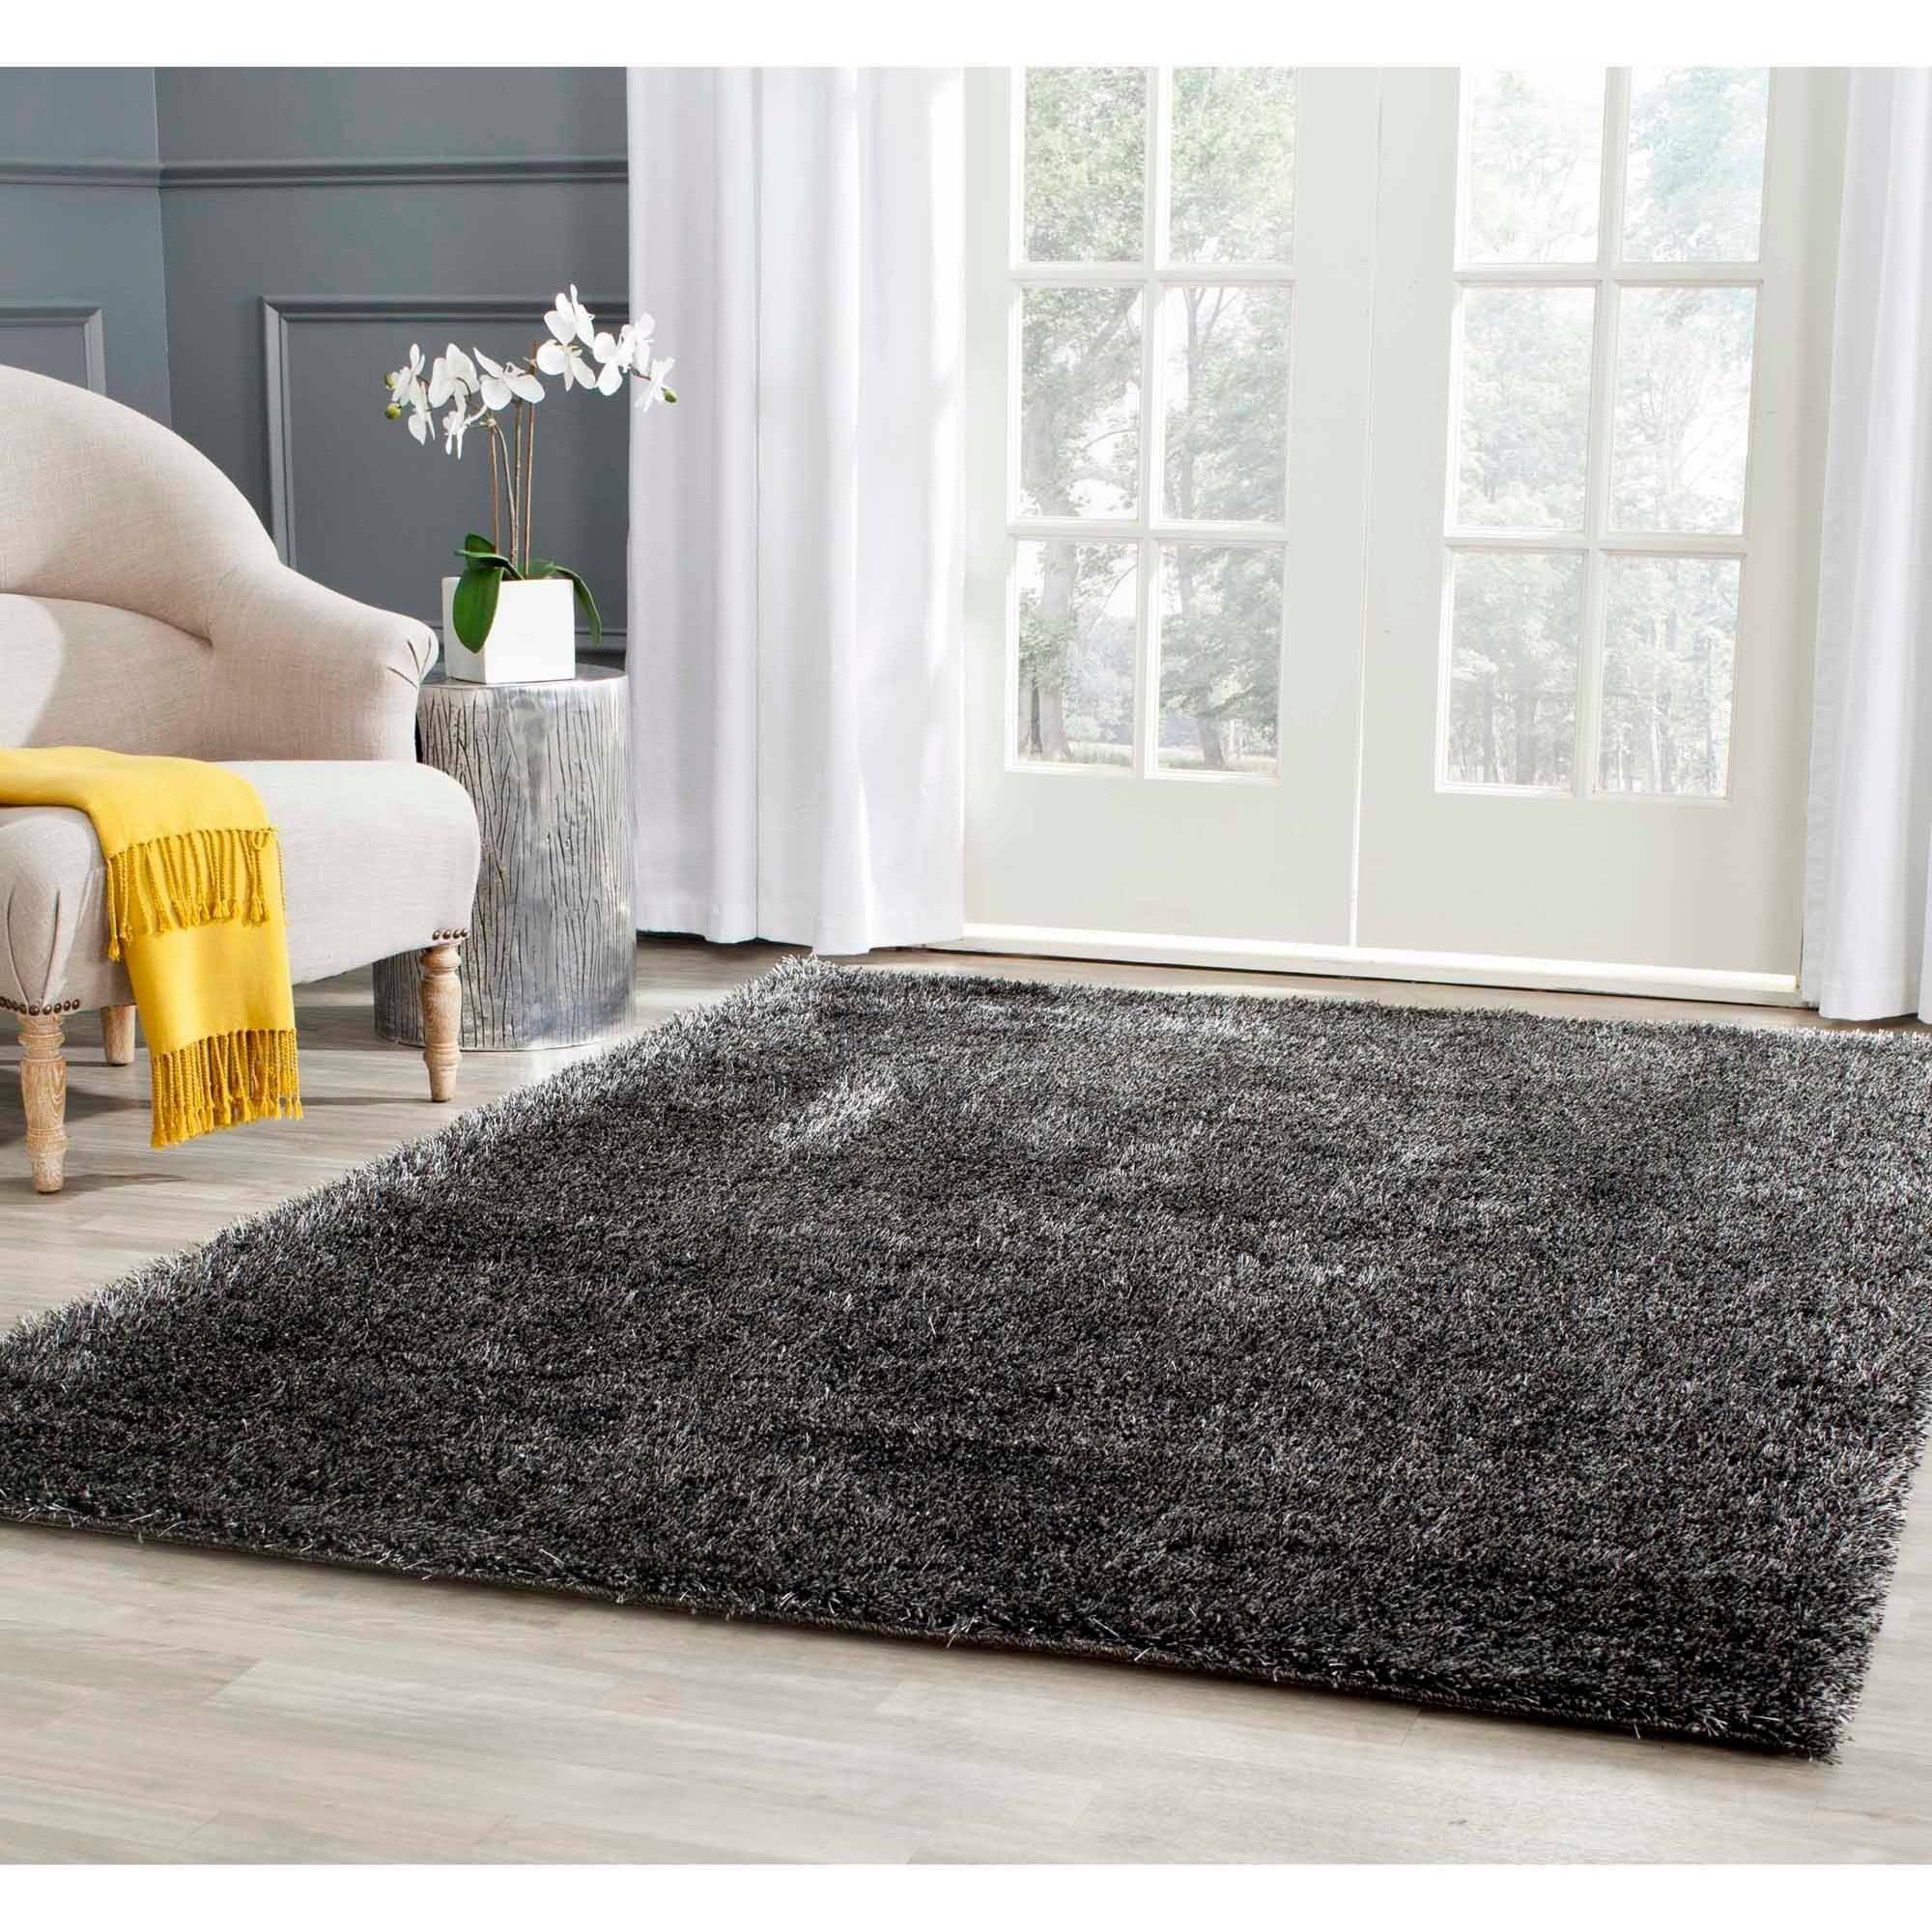 mainstays morgan shag area rugs or runner - walmart.com PXCTDEN